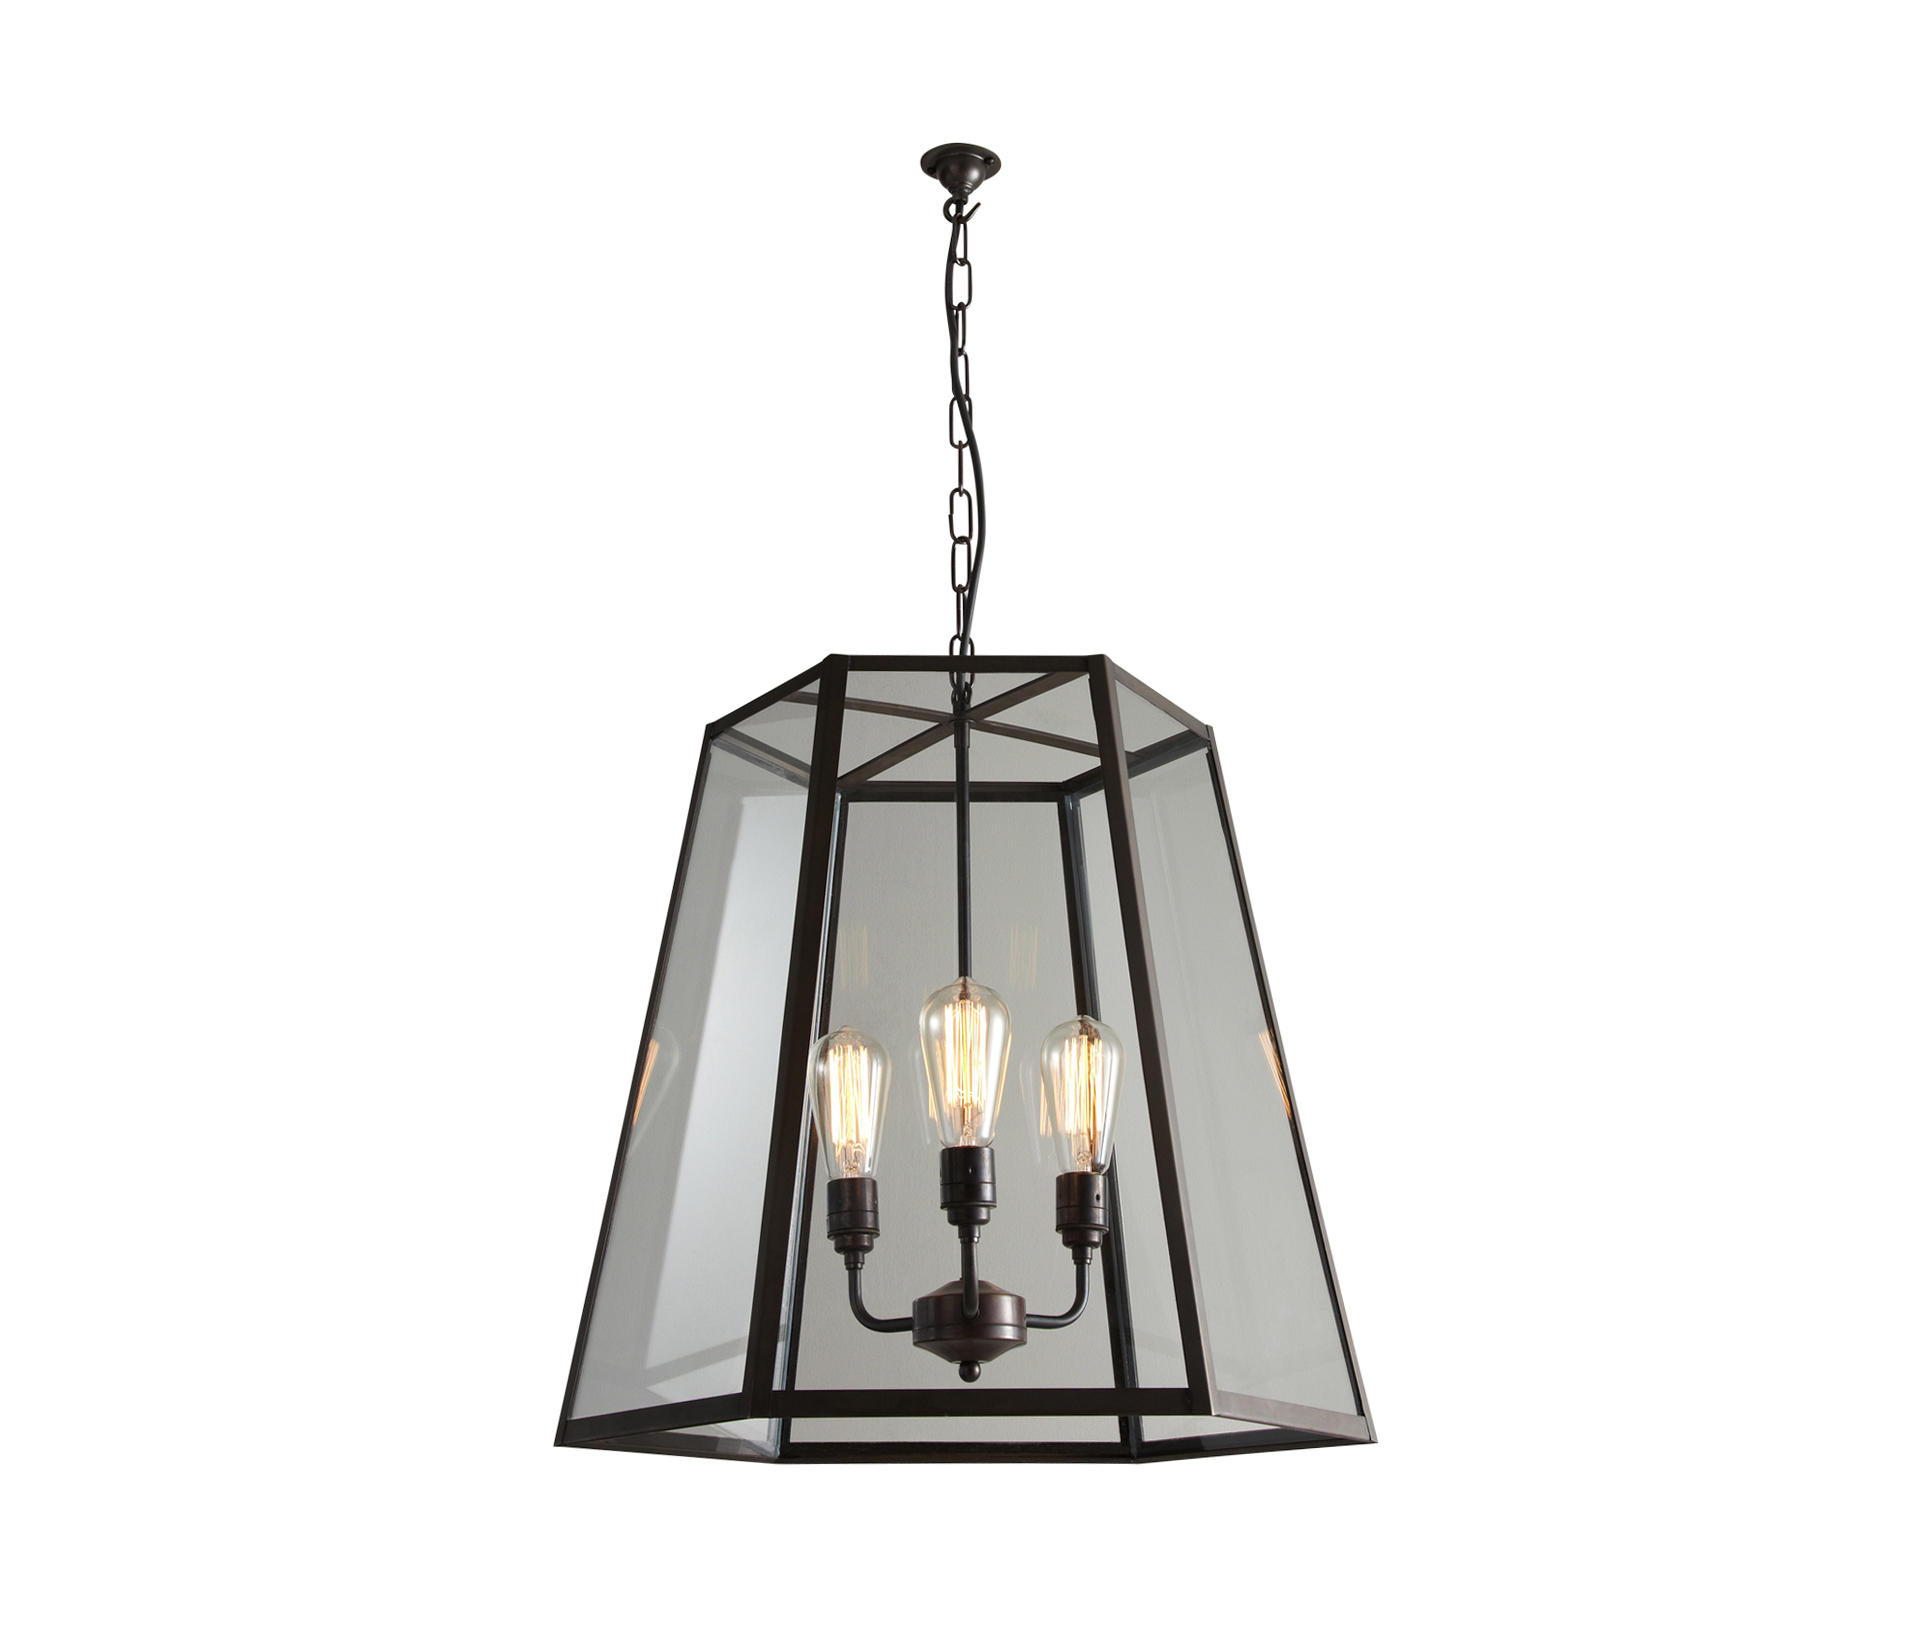 7651 Hex Pendant Extra Large Weathered Brass Clear Glass By Original BTC